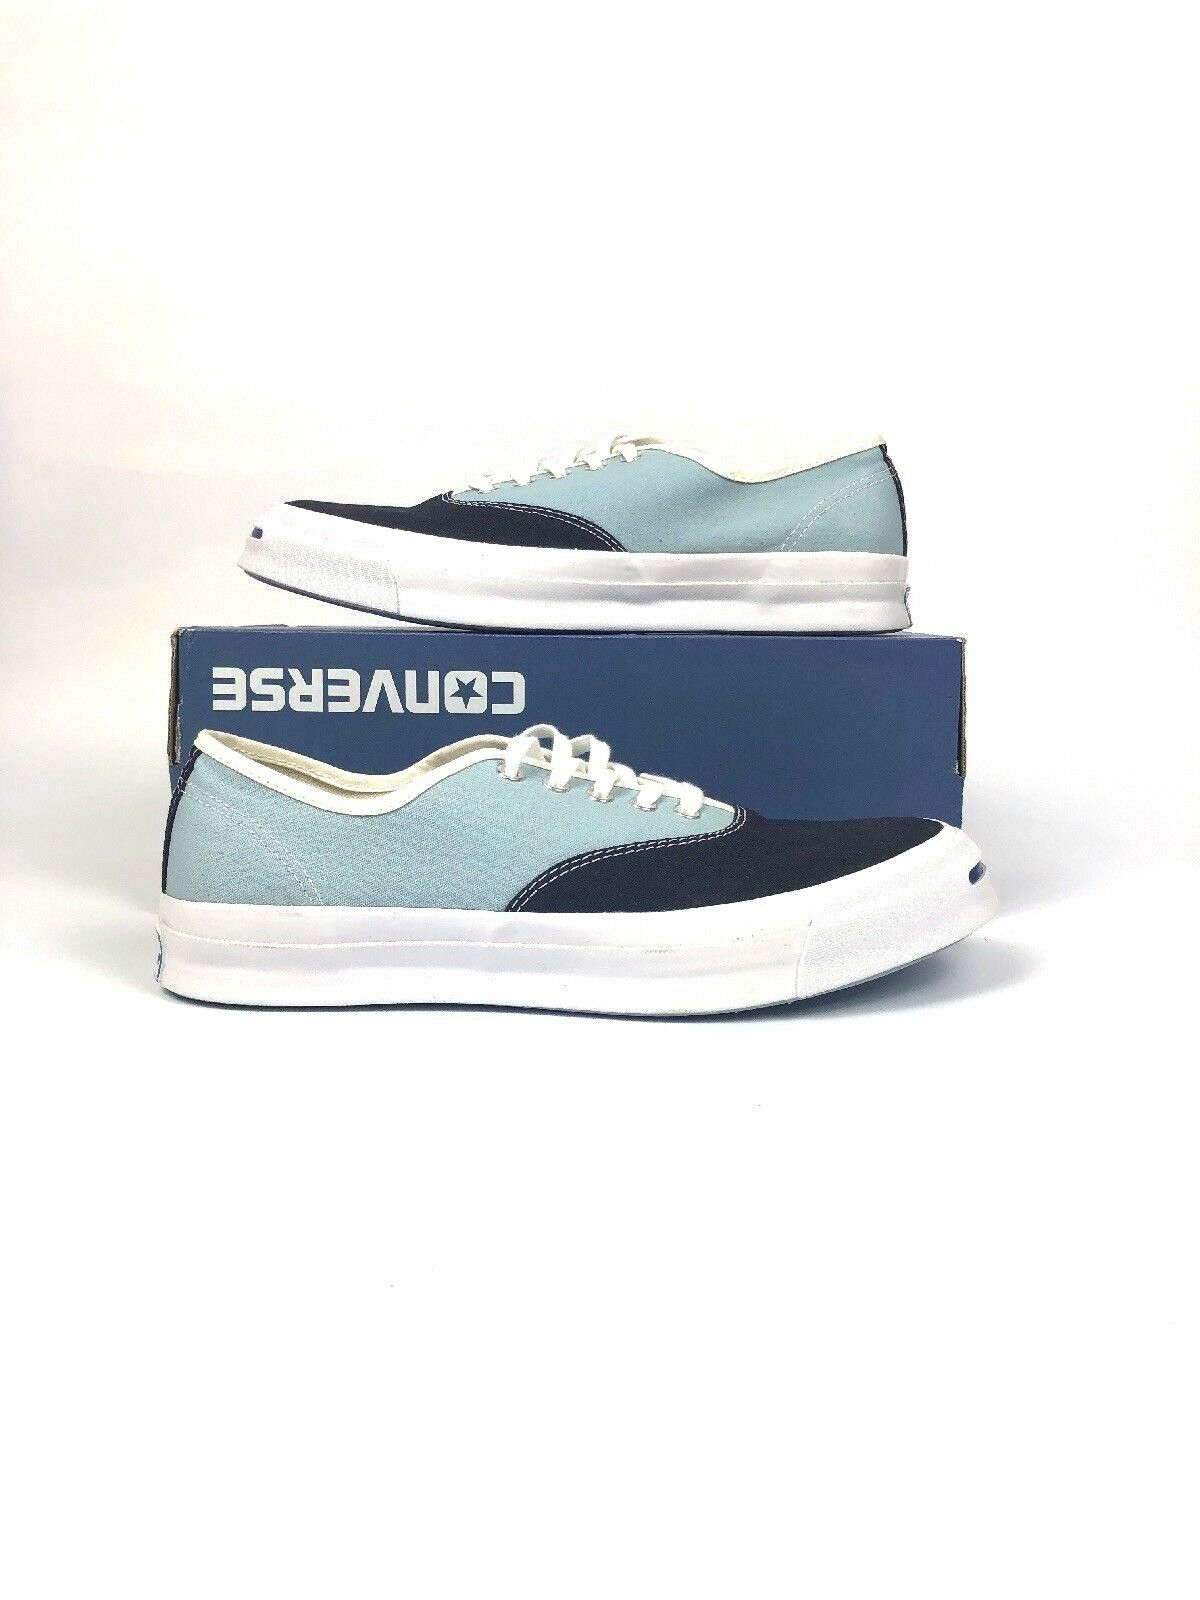 Converse Jack Purcell Signature CVO Ox Inked Ambien Blue/White Casual 151455C 1